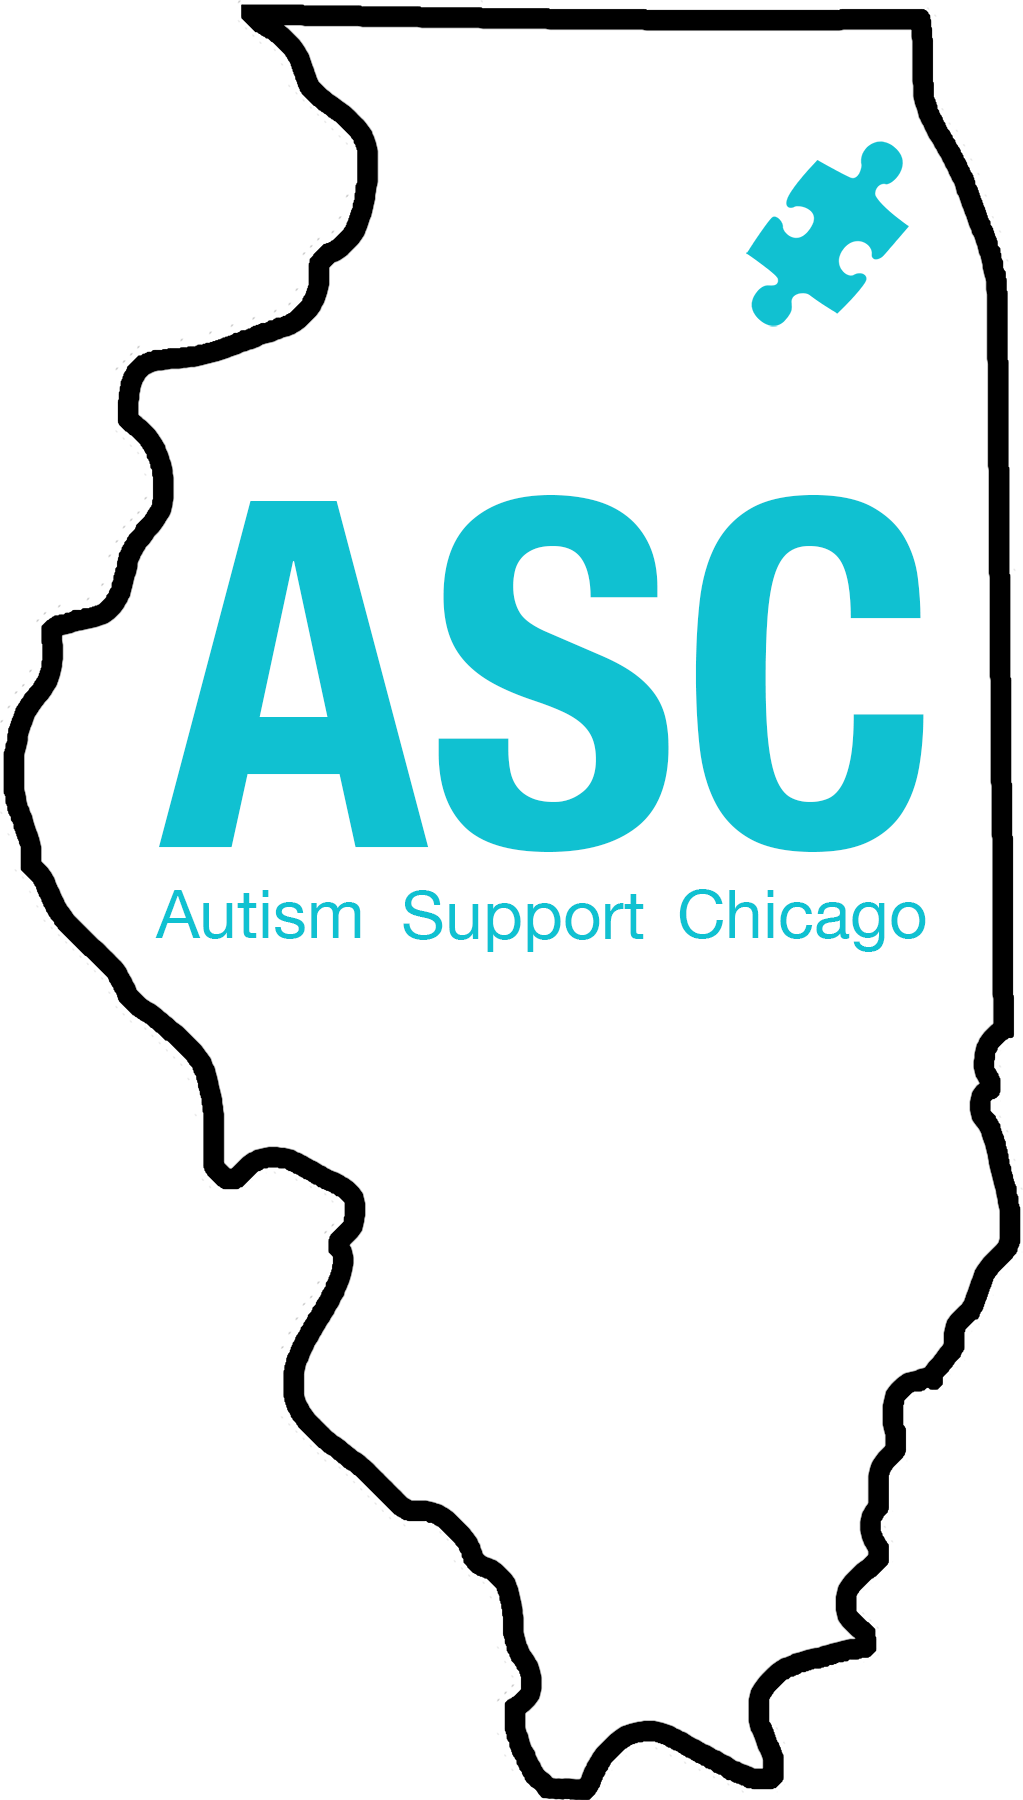 *Service Provider* Autism Support Chicago